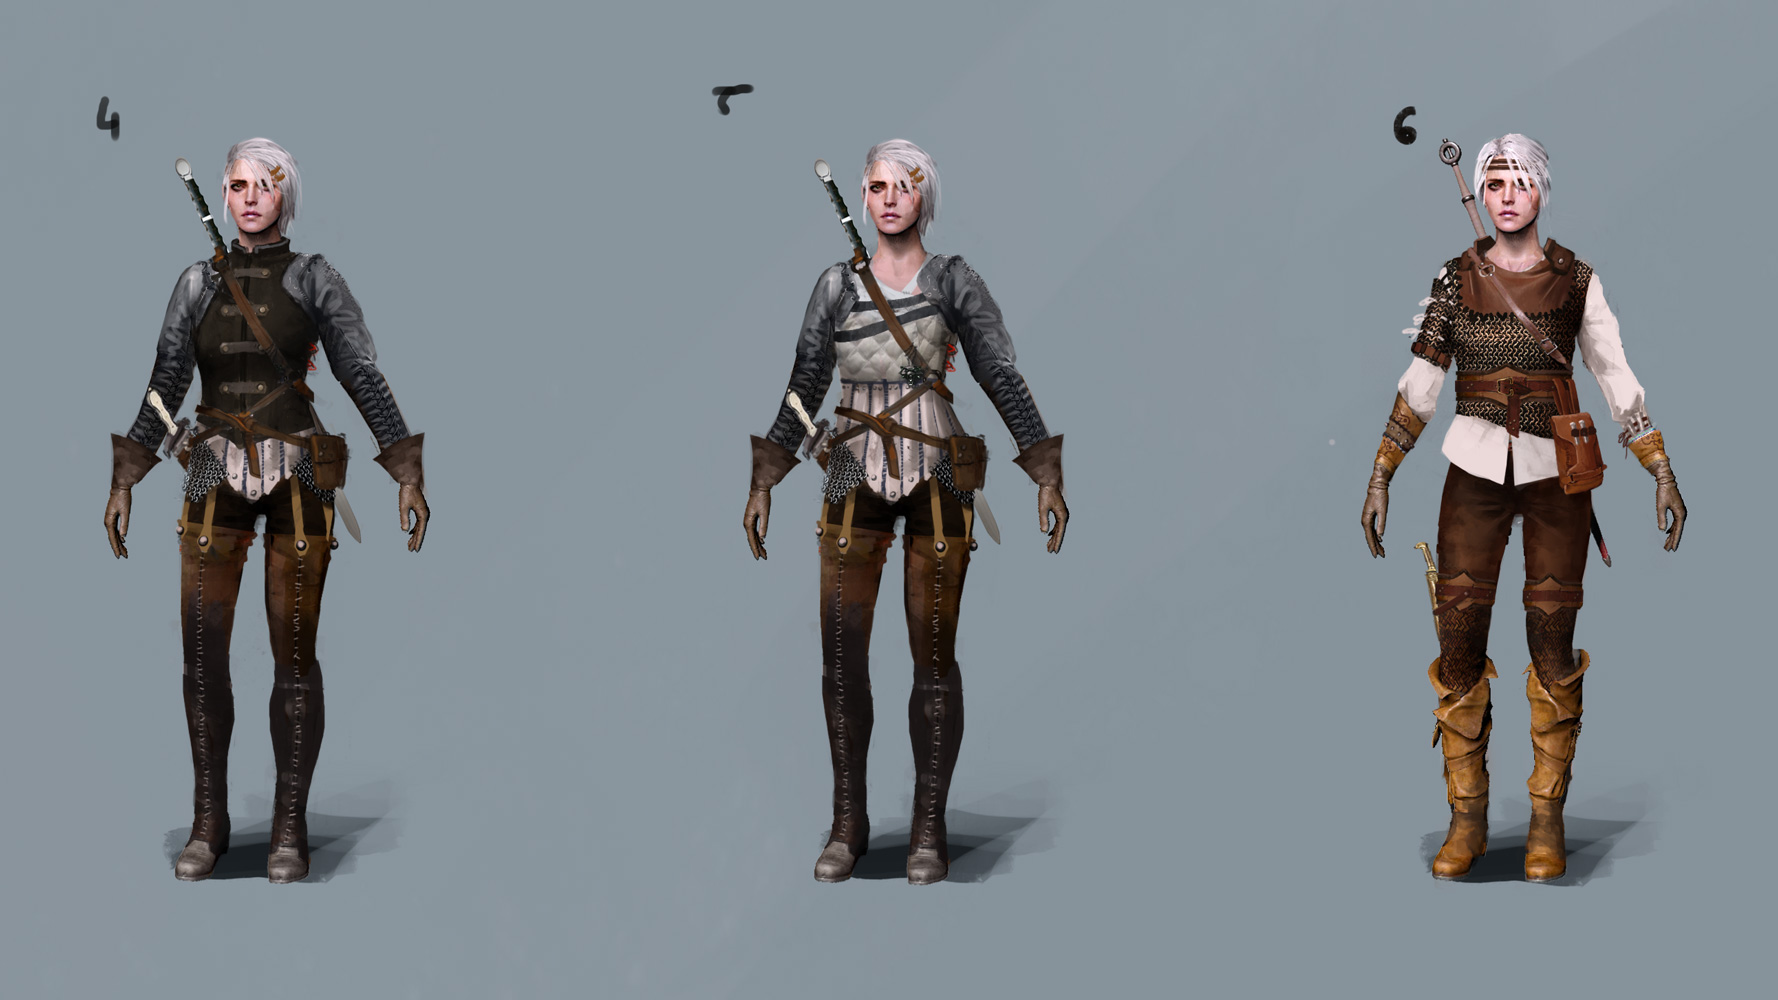 The Witcher 3 Alternative Look For Ciri Free Dlc Leaked New Quest Available For Download N4g